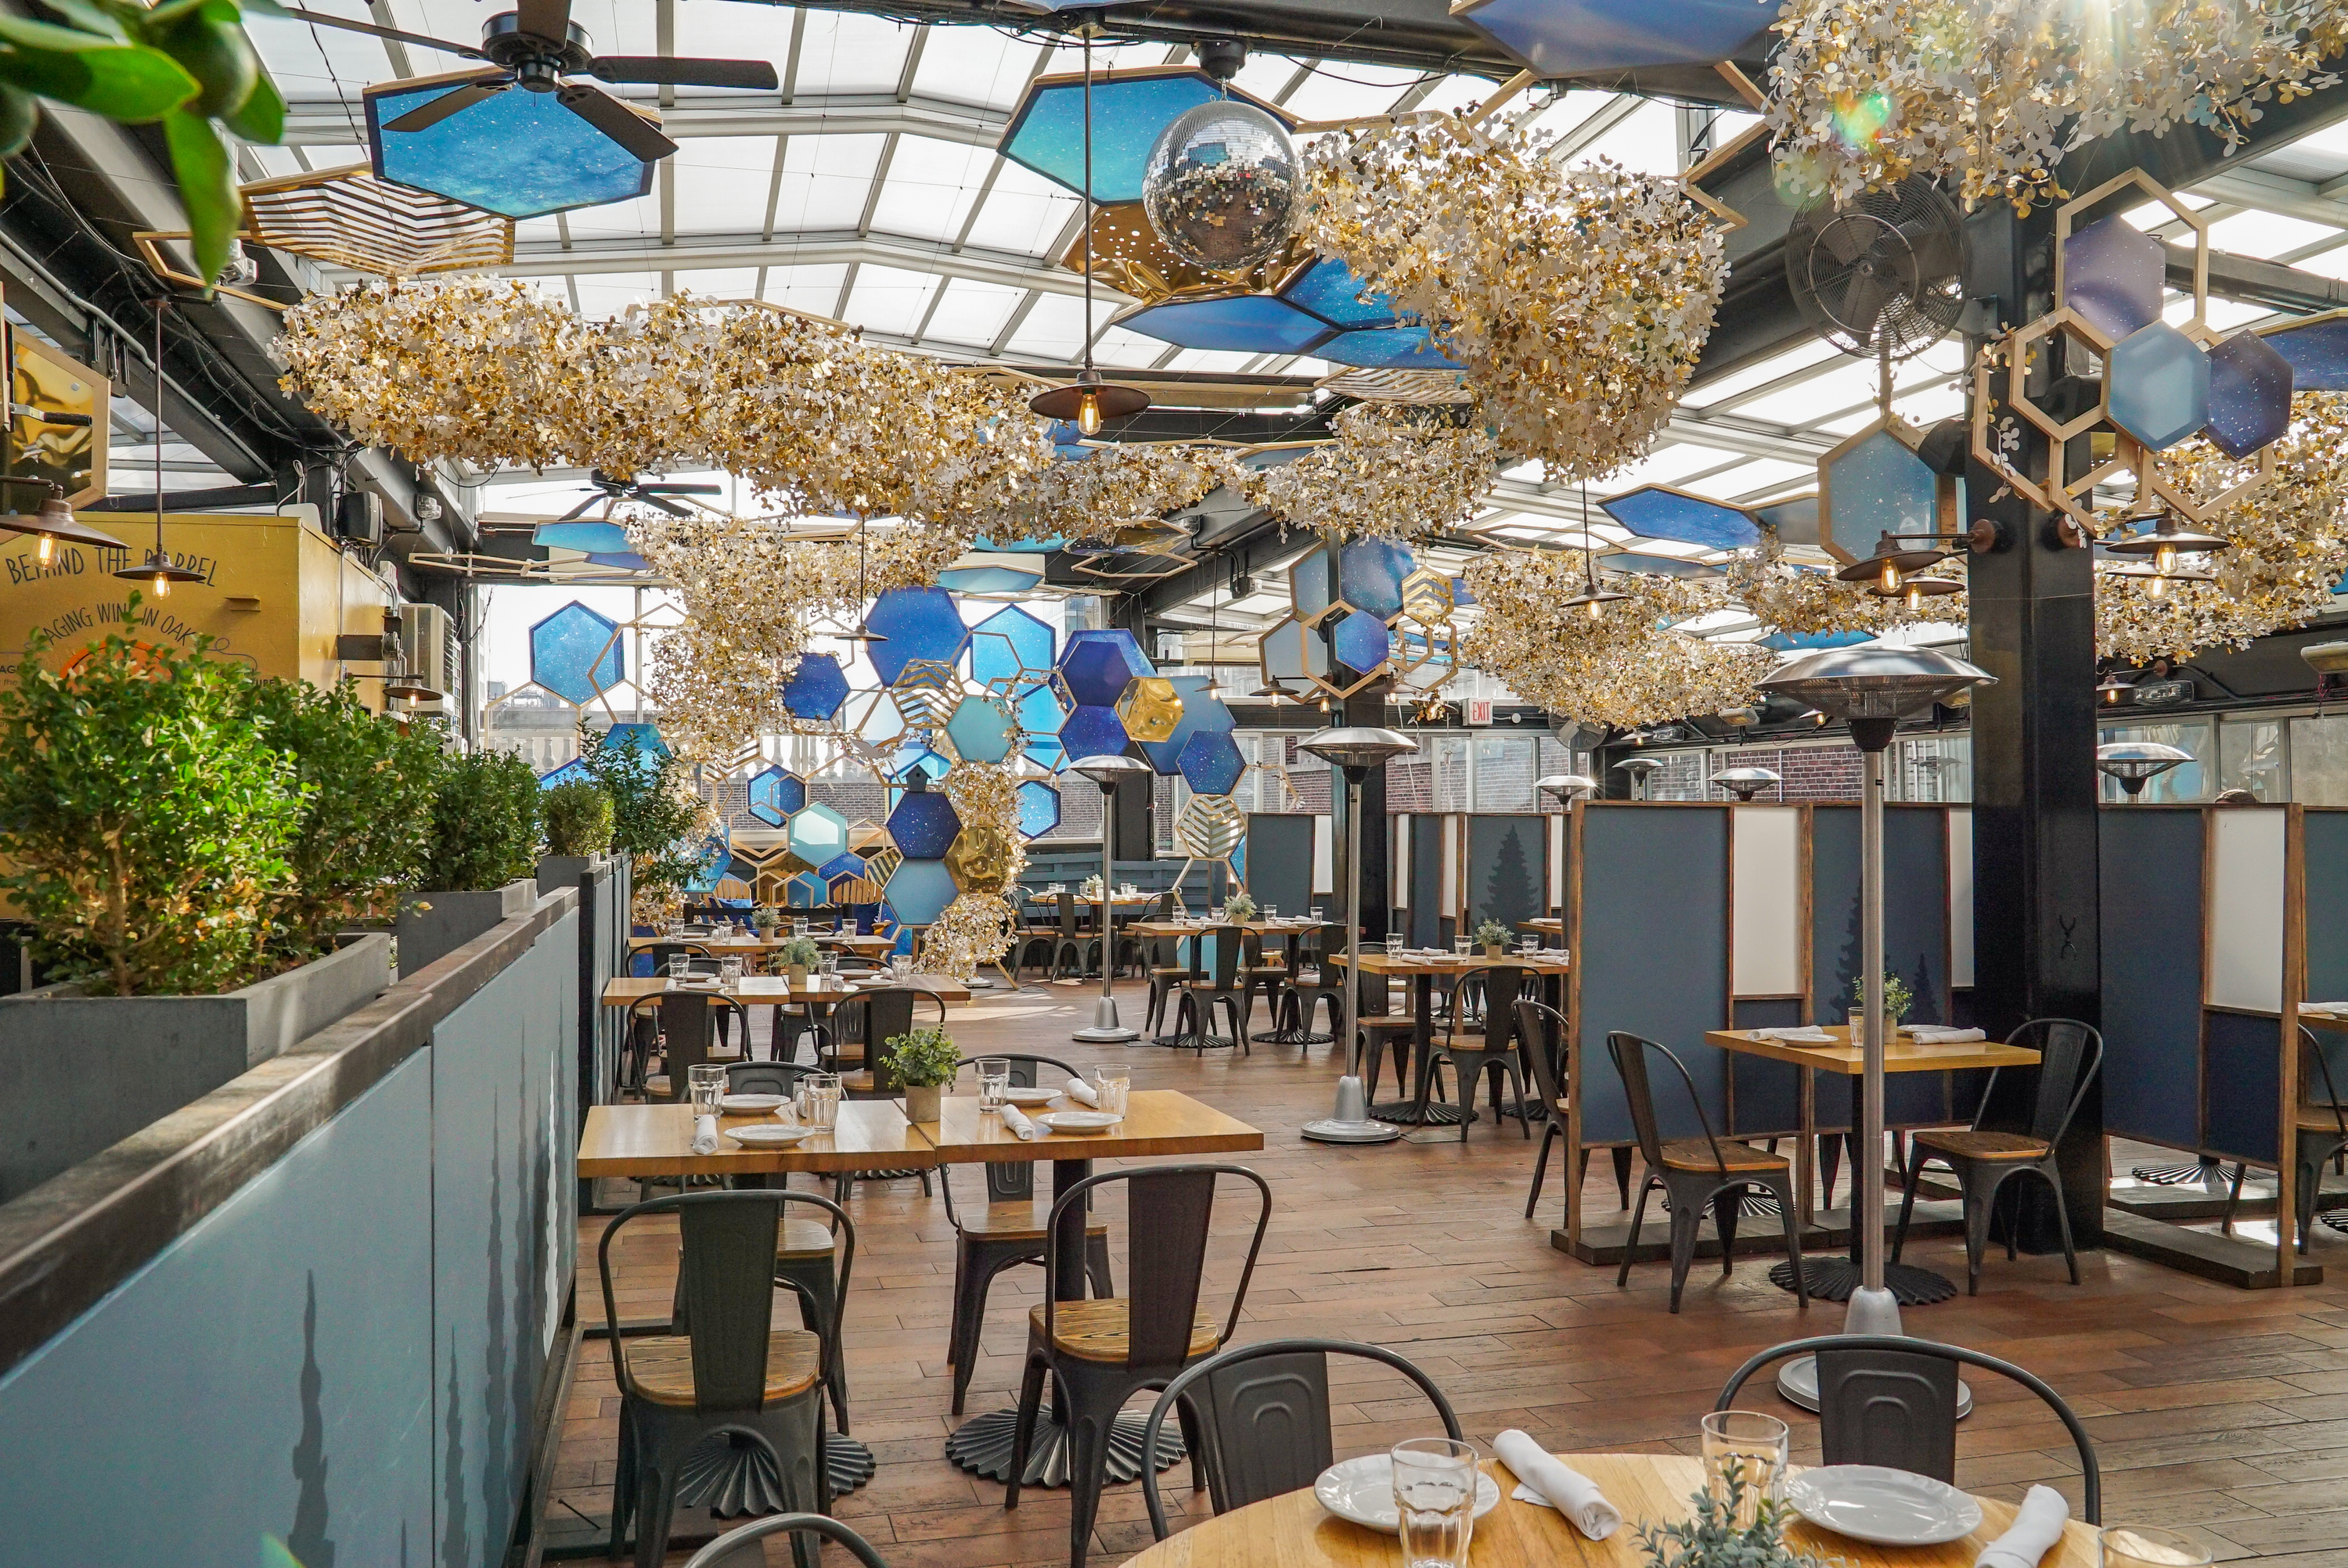 Here's an exclusive first look at Eataly's brand-new winter rooftop restaurant